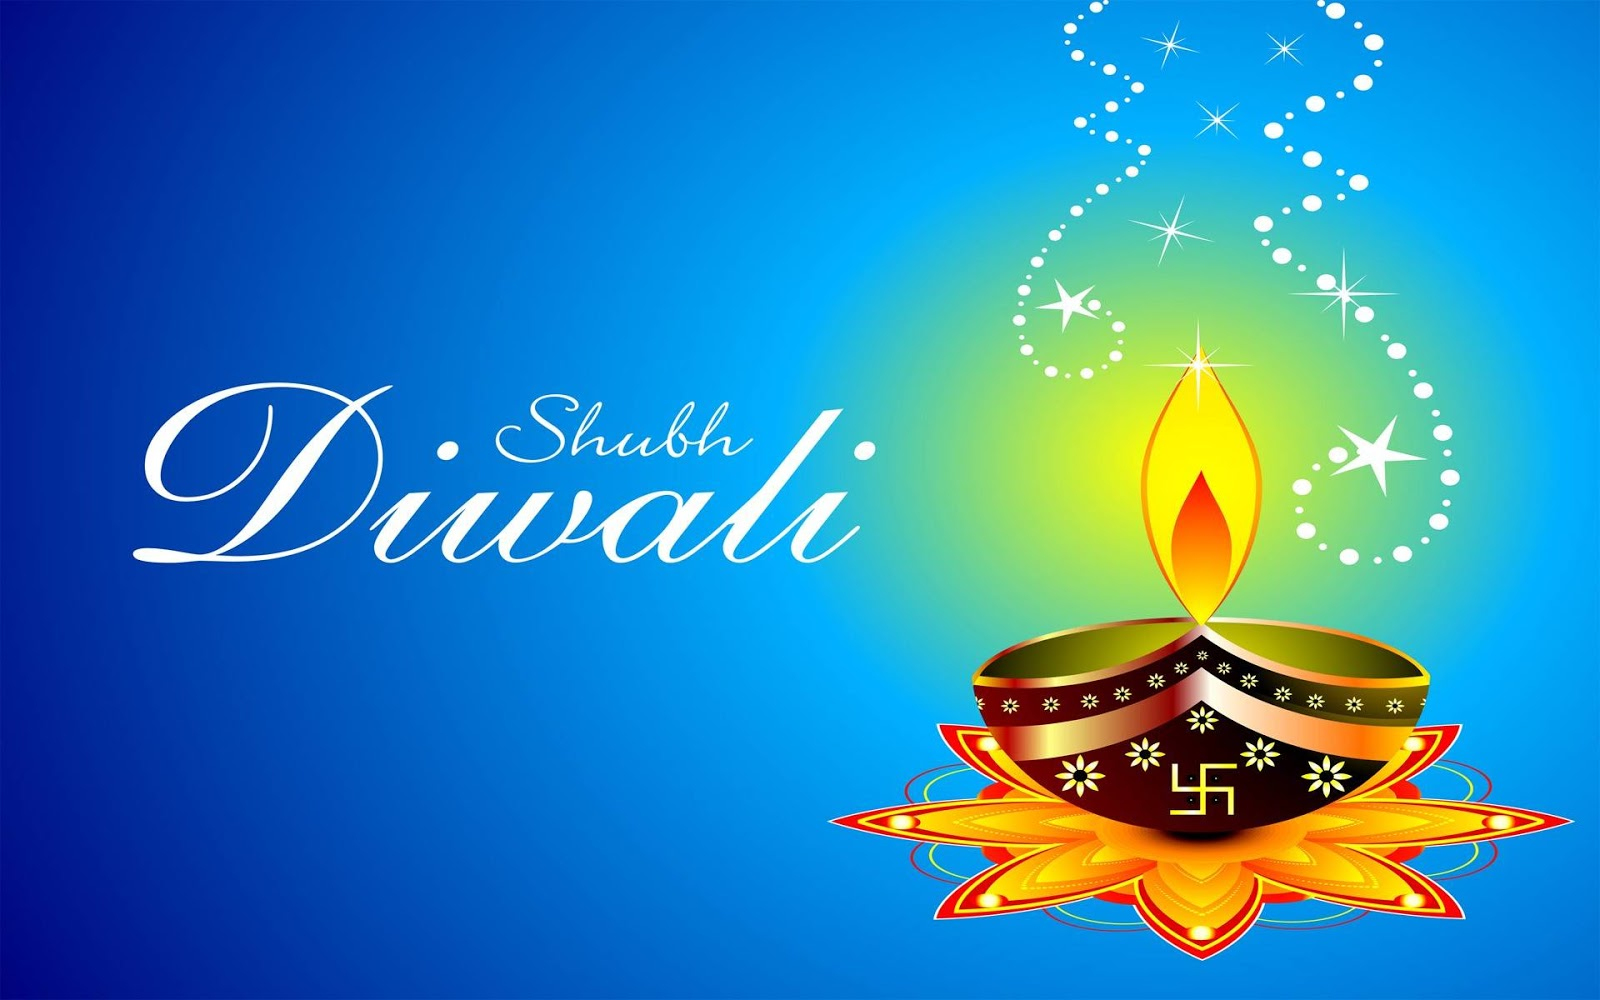 Download Happy Diwali Images Photos Wallpapers Hd For Whatsapp